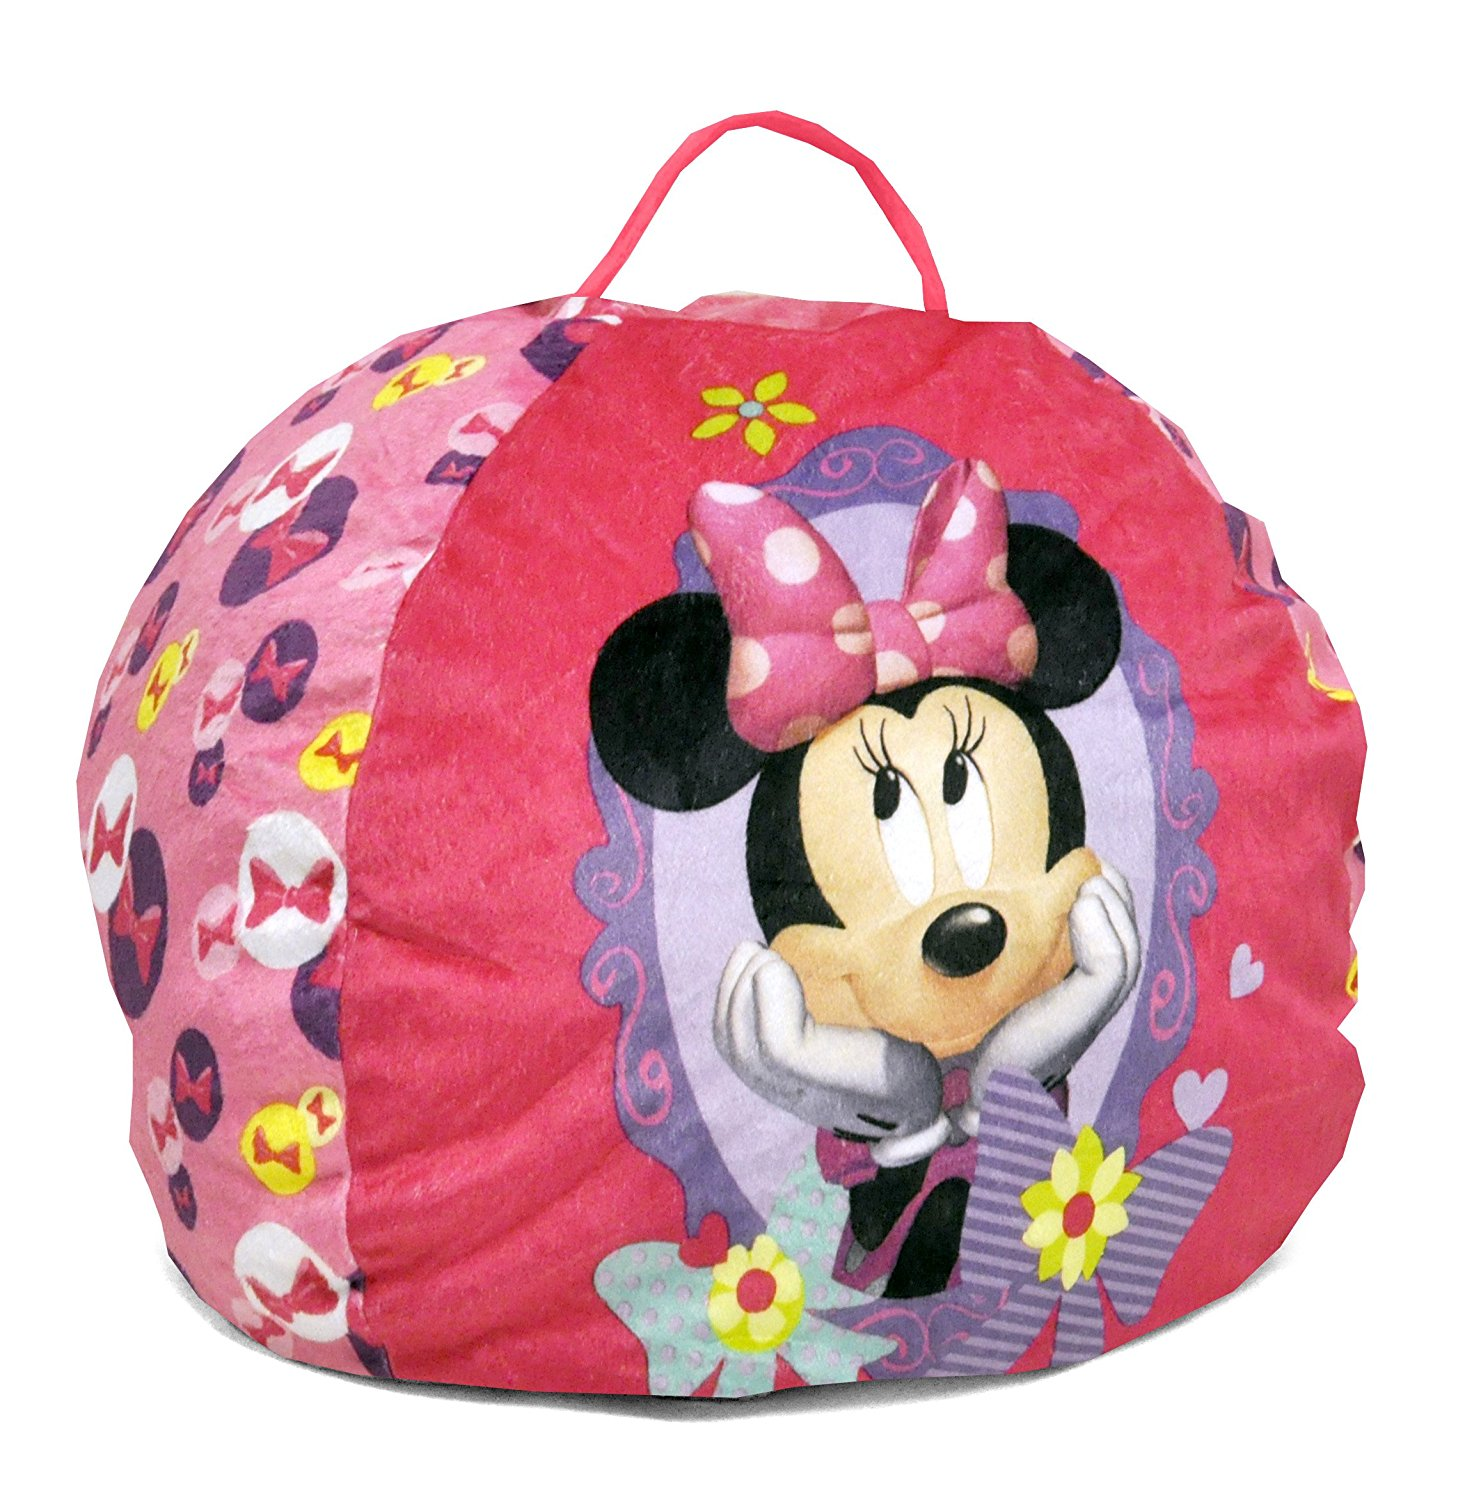 Disney Minnie Mouse Toddler Bean Bag